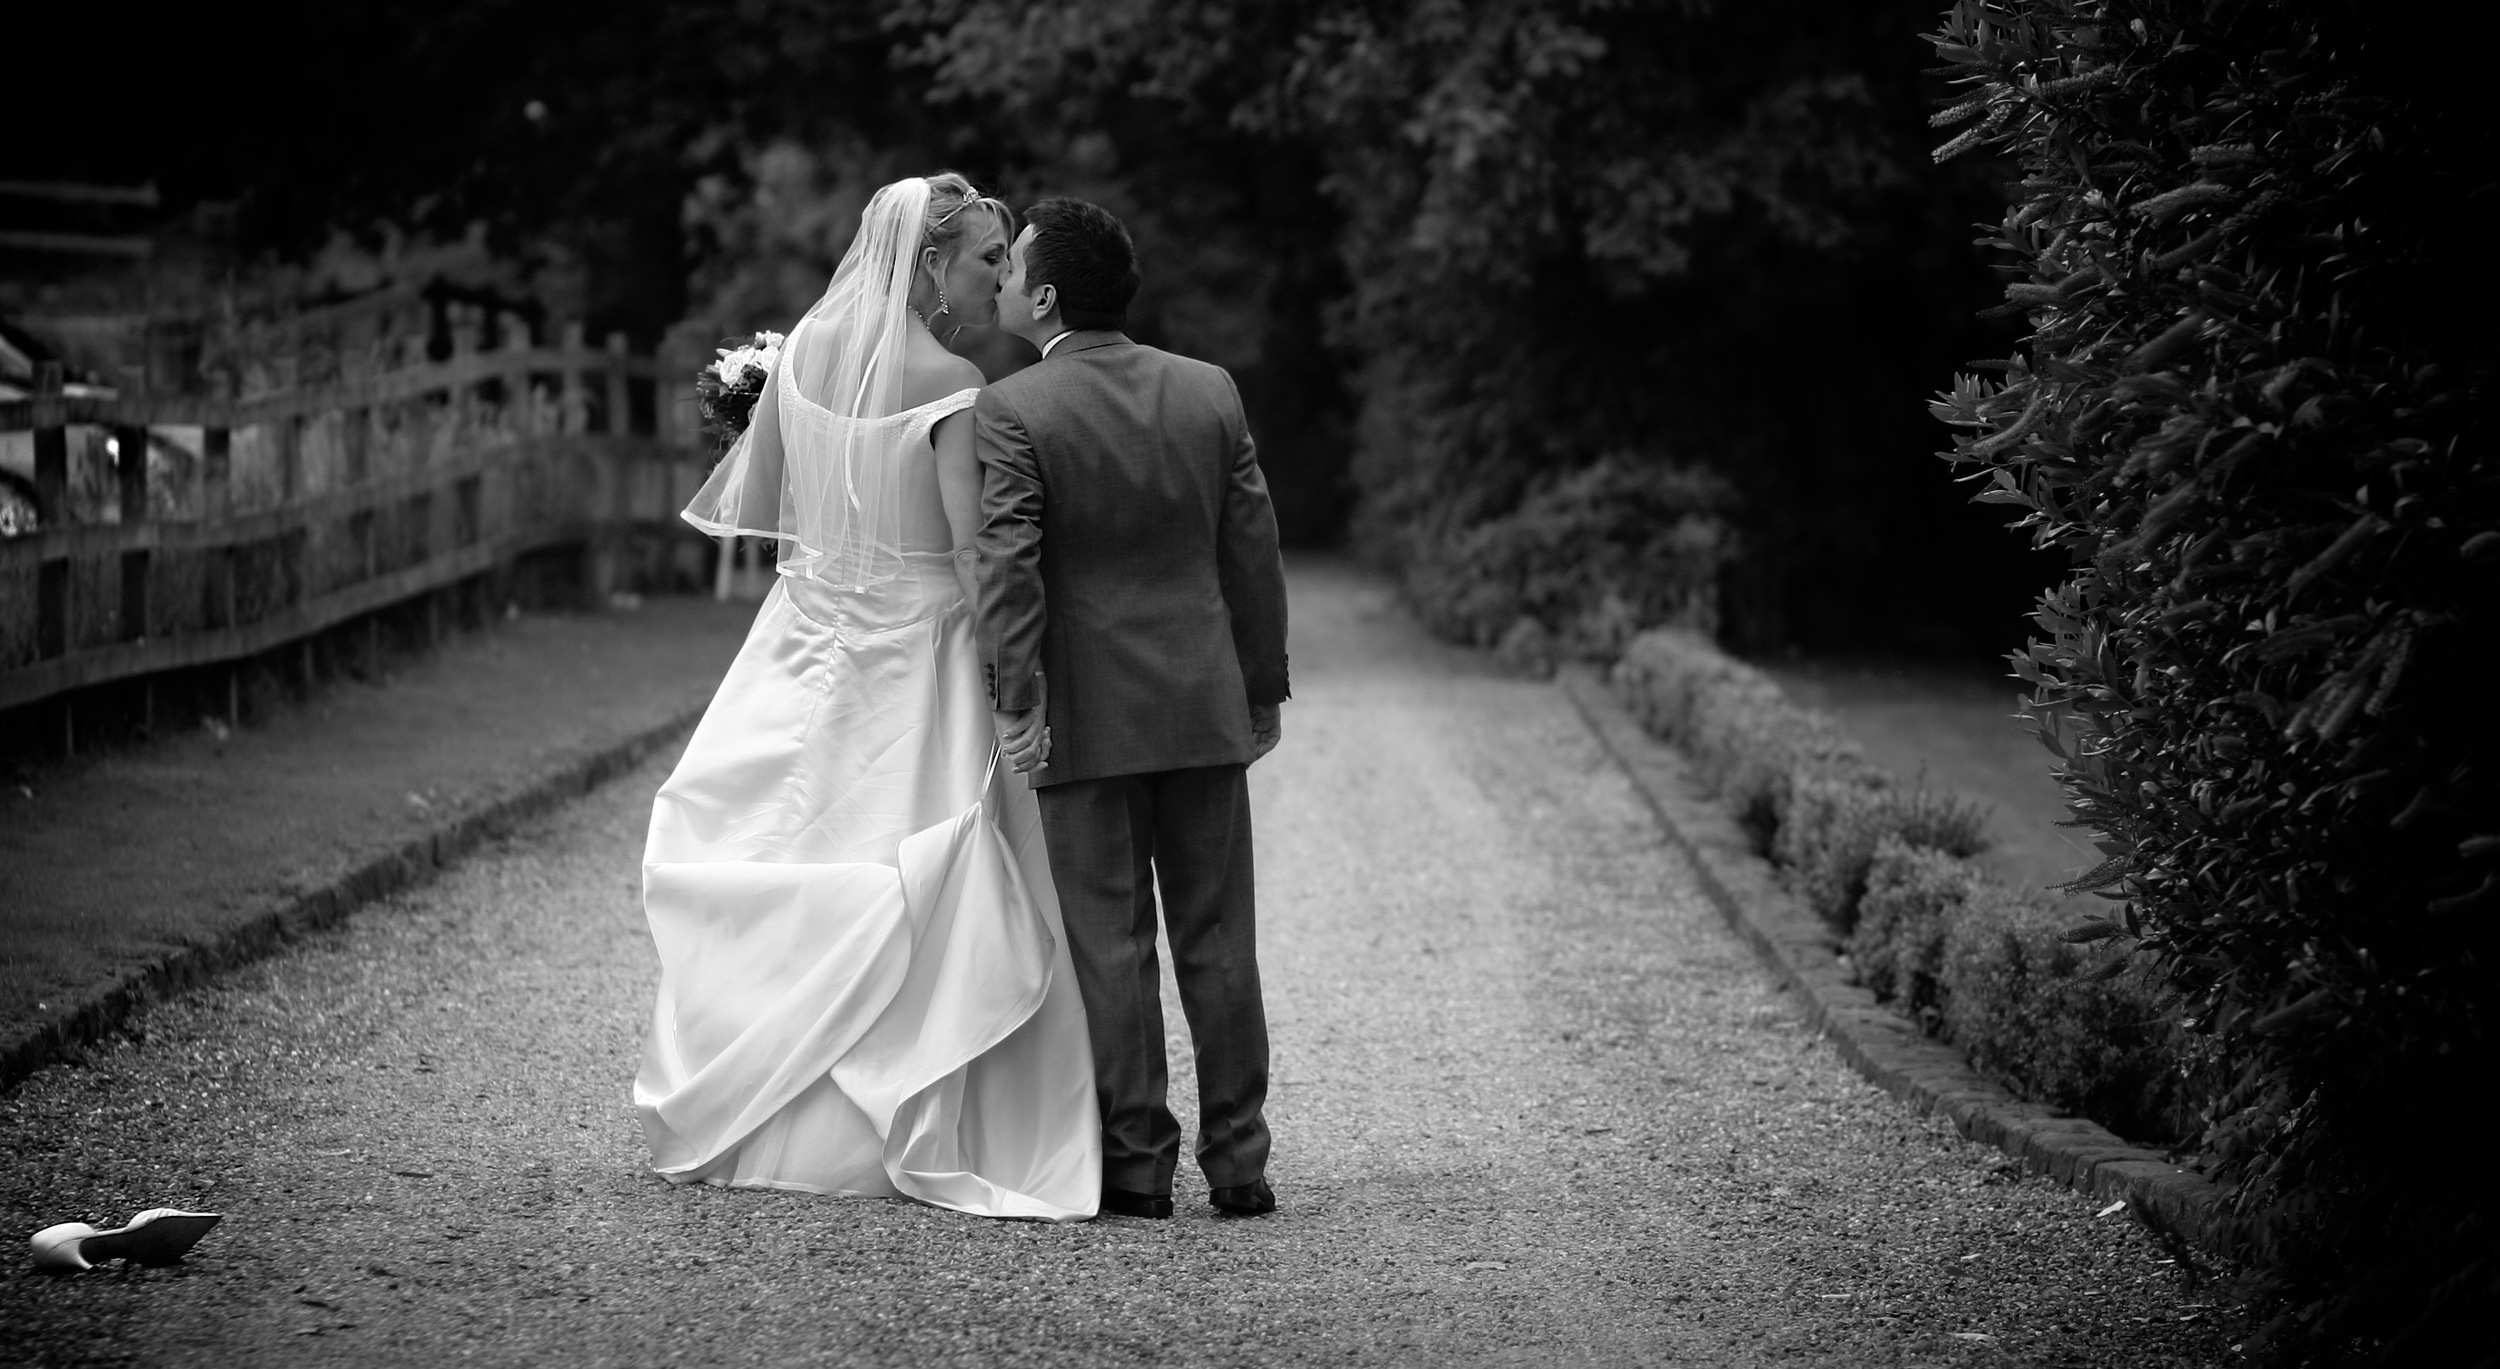 The Cinderella Bride. Suzanne & Dan walking down the lane together.  ©  Wedding Photography by Vivid Confetti